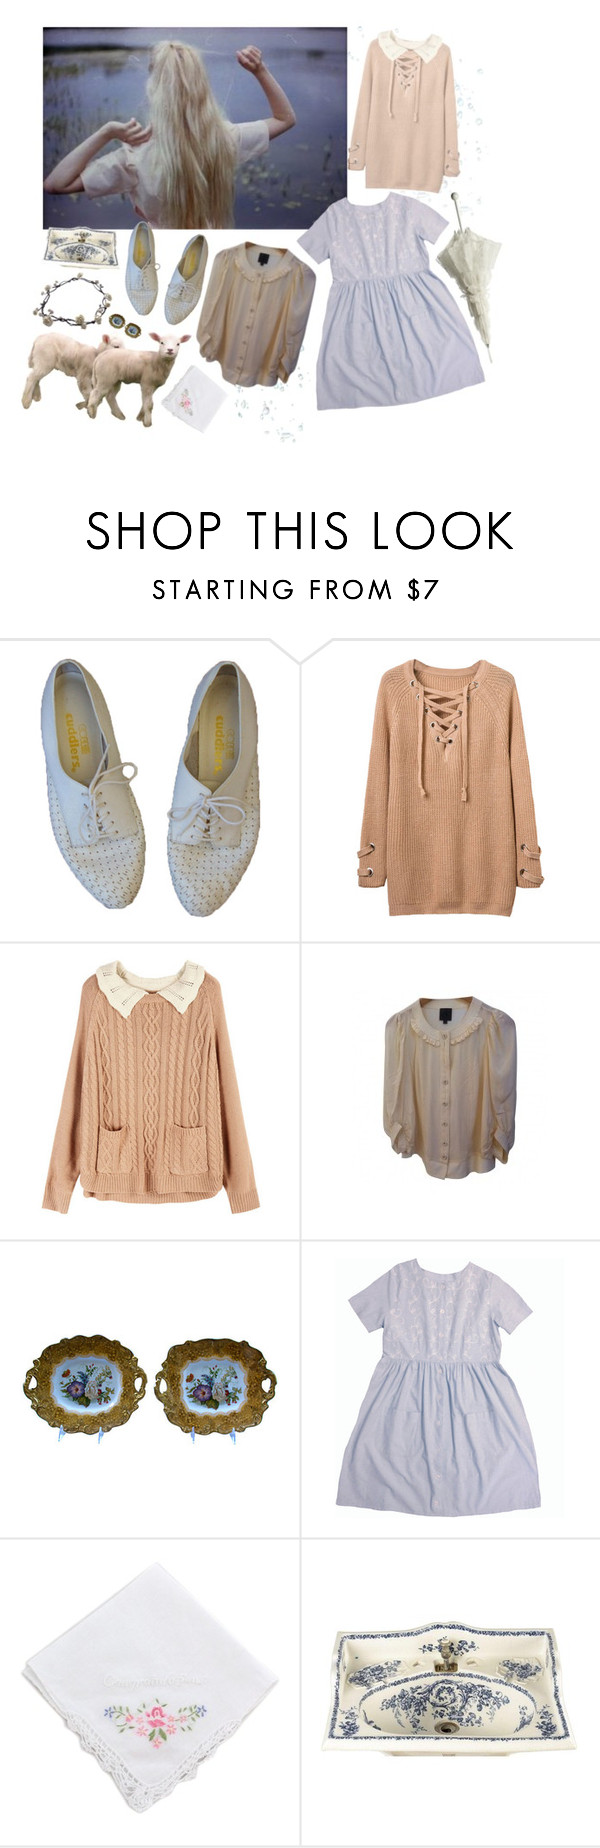 """""""Calling out my name in the summer rain"""" by puella-animo-aureo on Polyvore featuring moda, Calvin Klein e Chanel"""